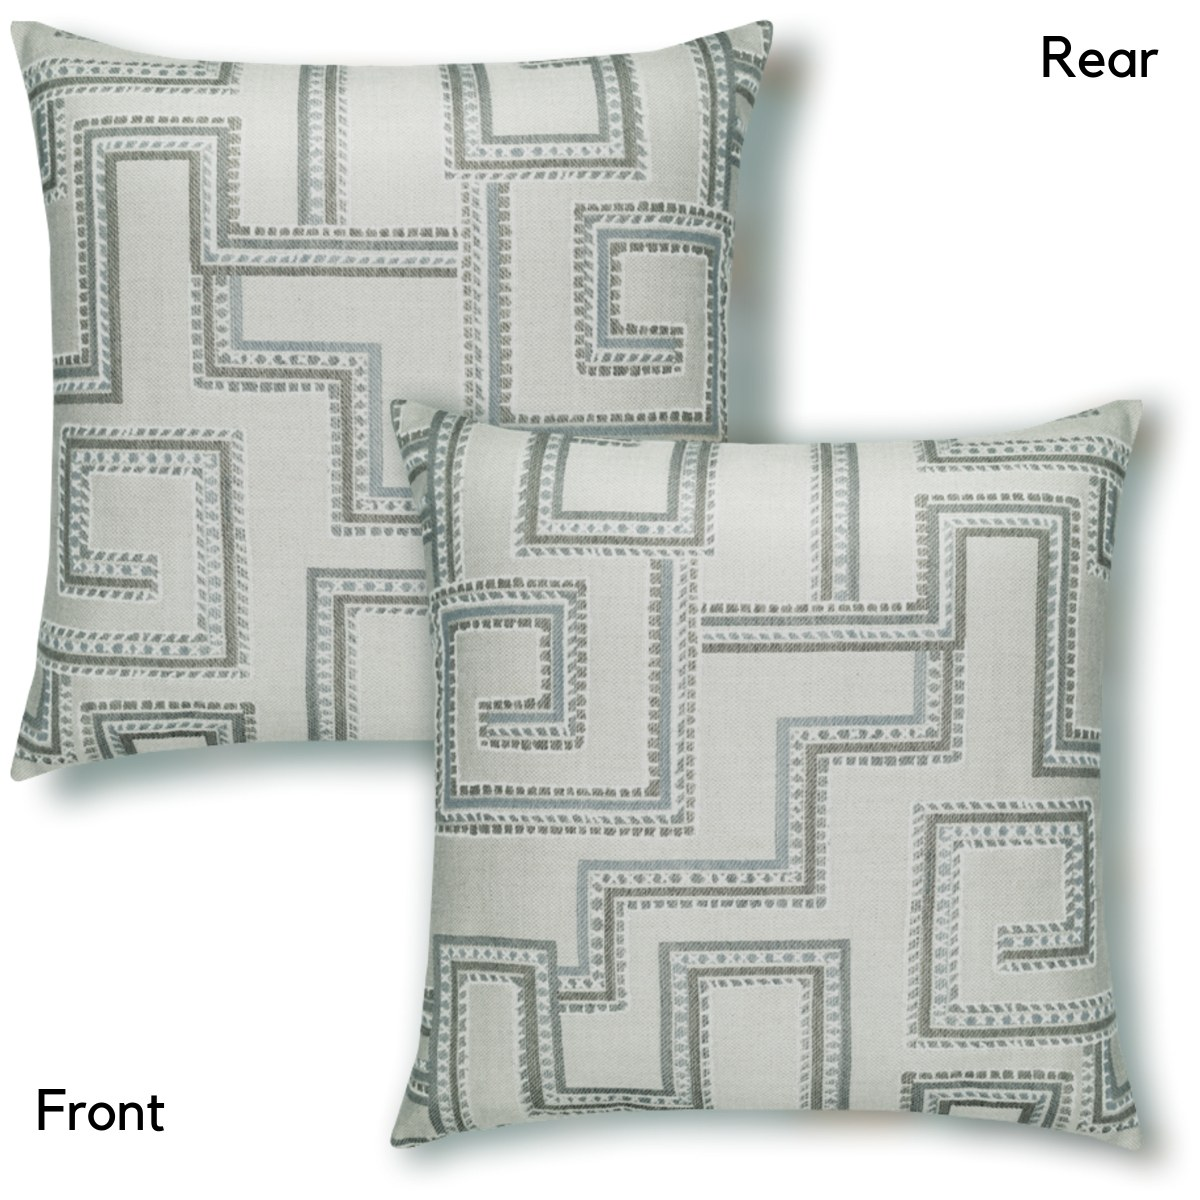 elaine-smith-maze-pillow both sides